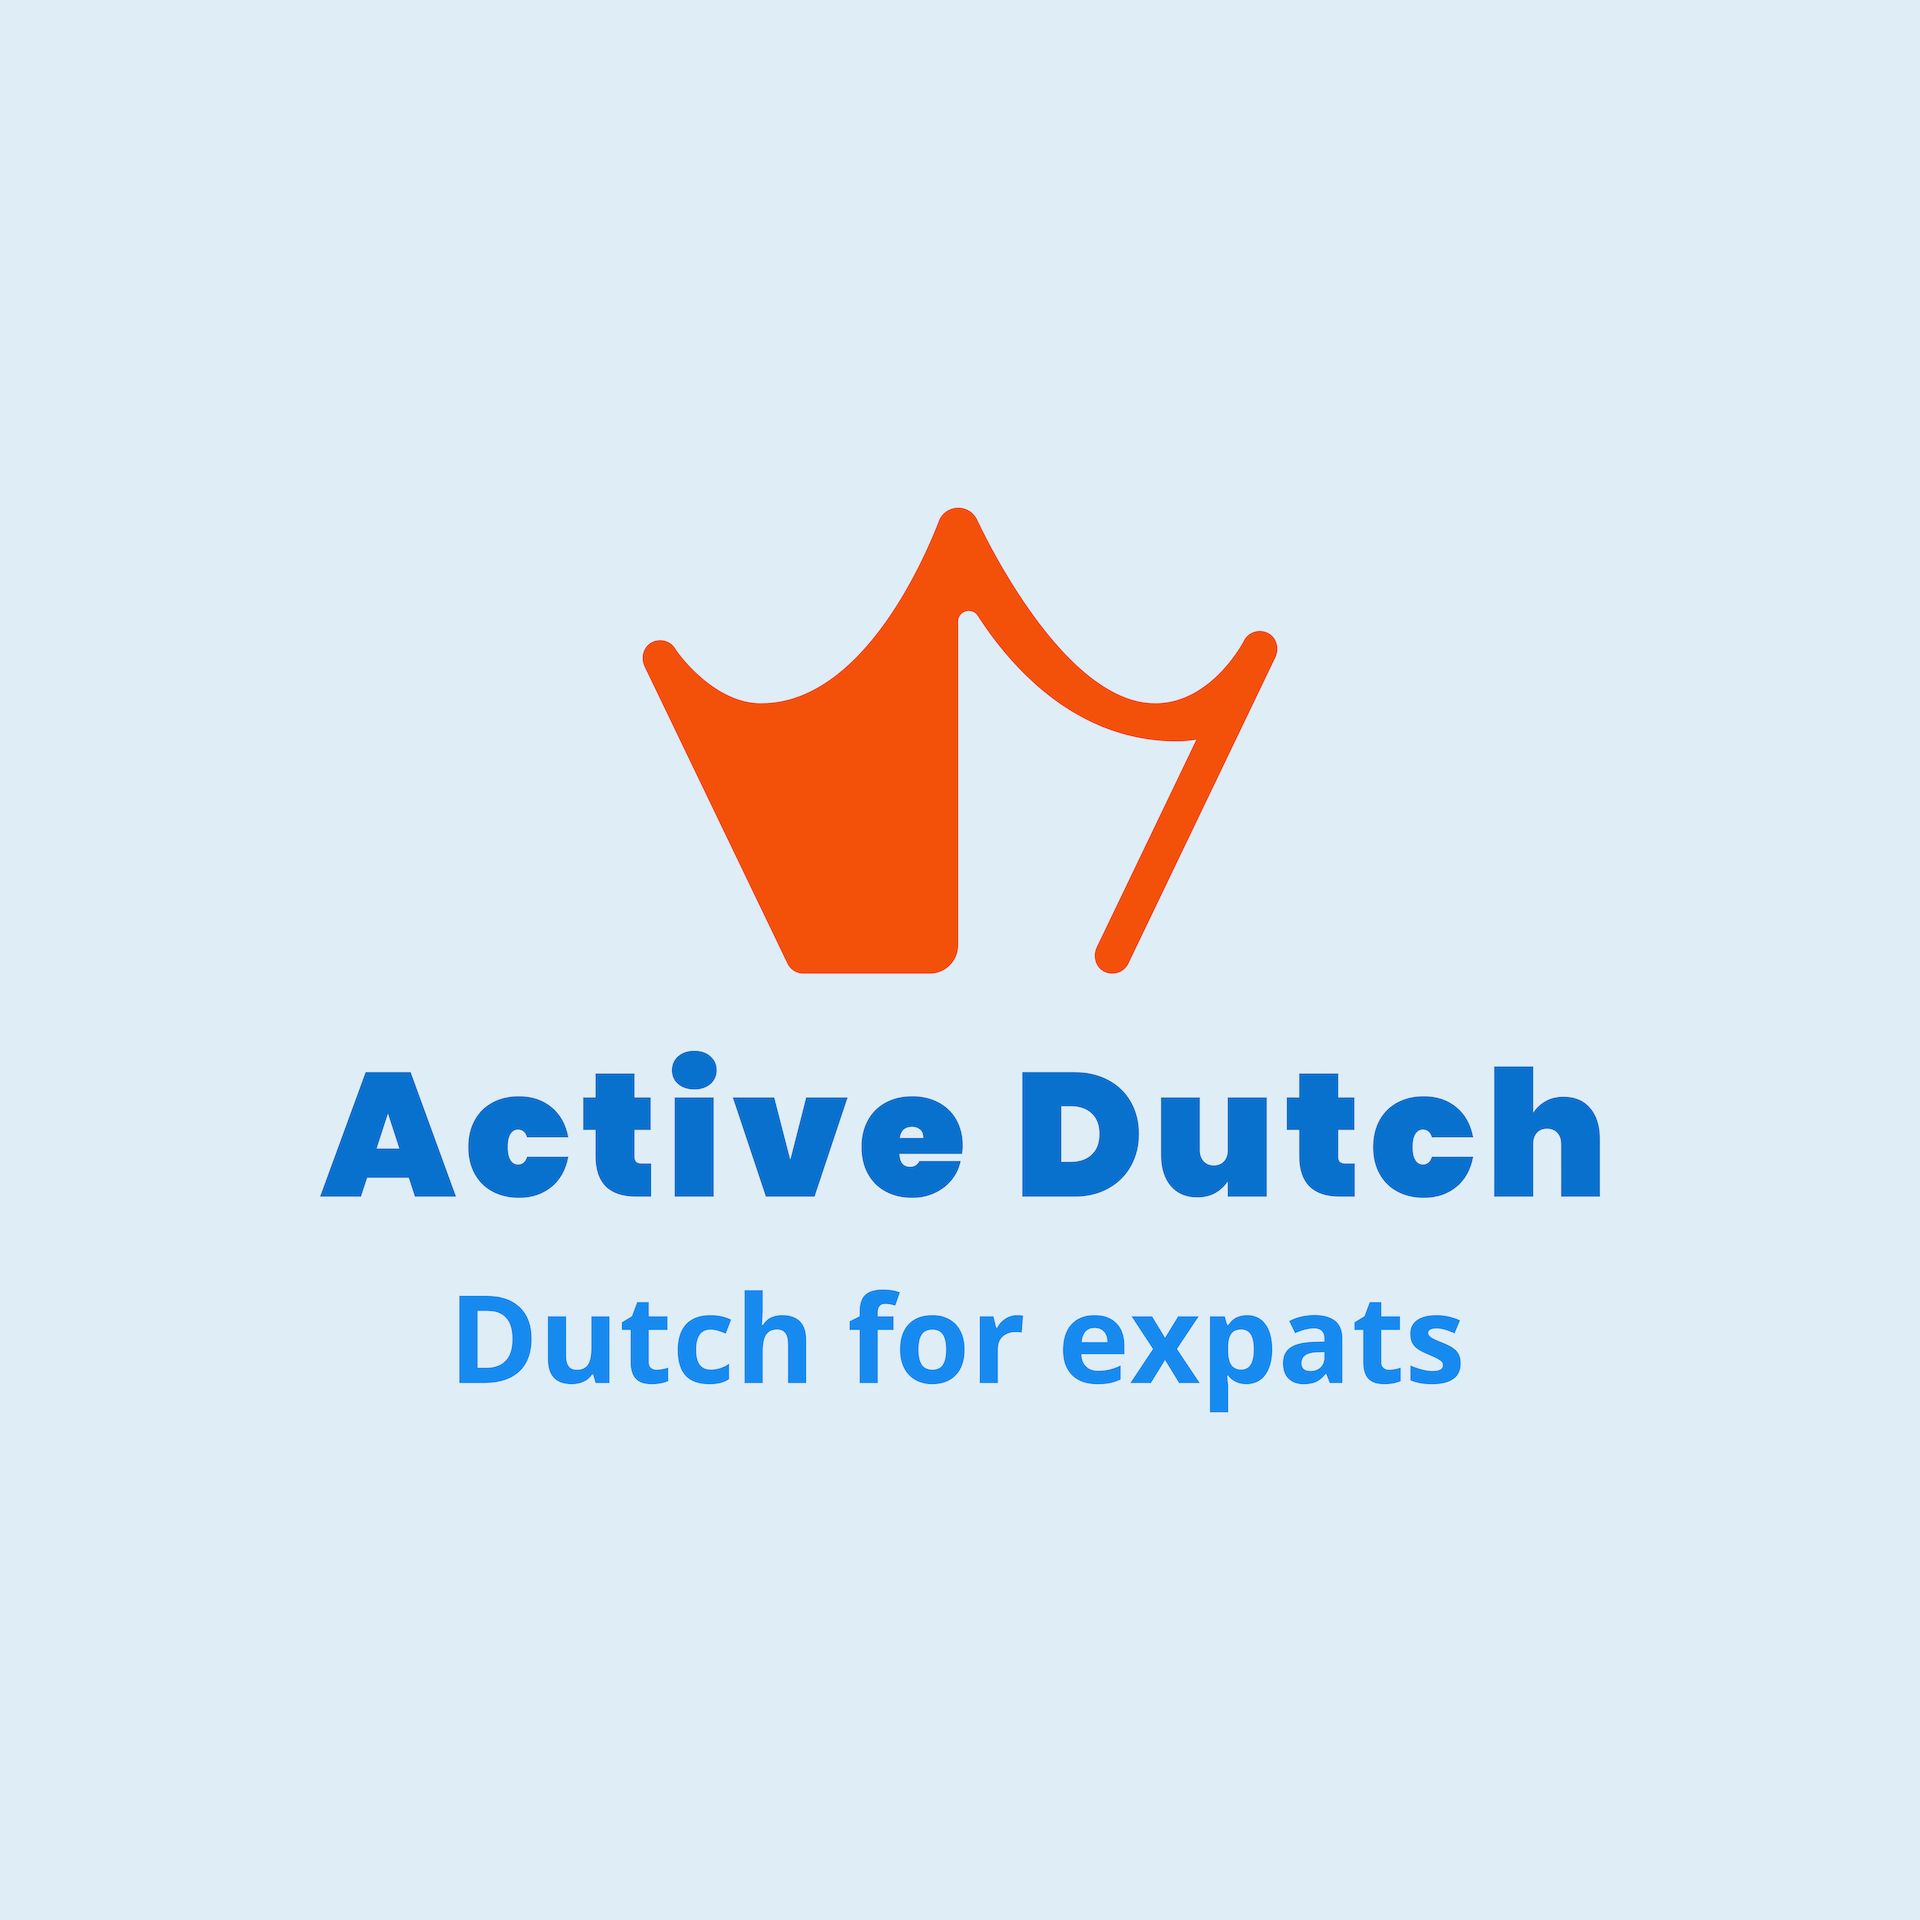 Dutch for expats - Active Dutch